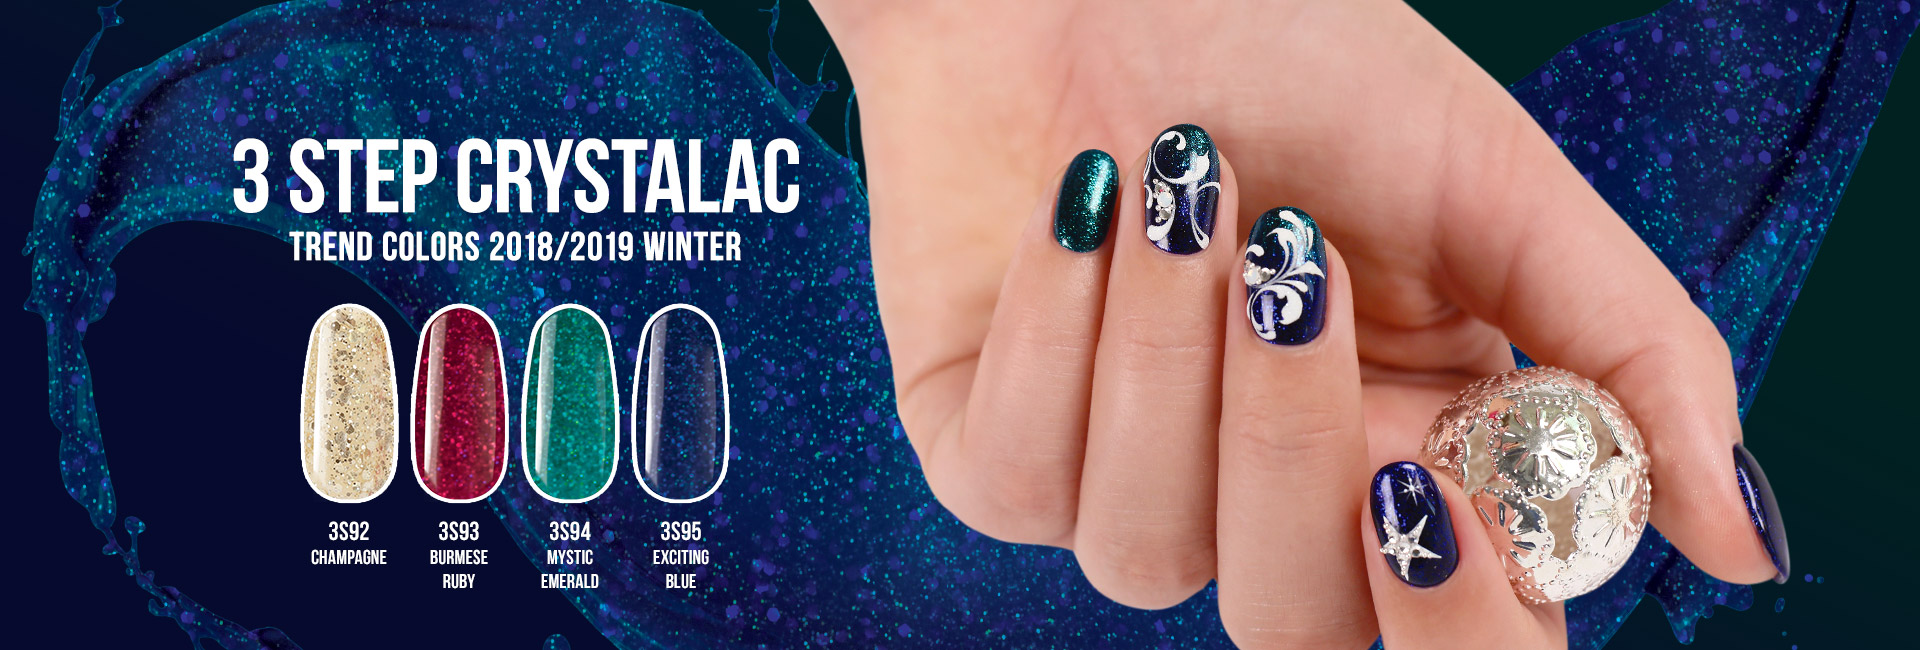 3 Step CrystaLac Trend Colors Winter 2018